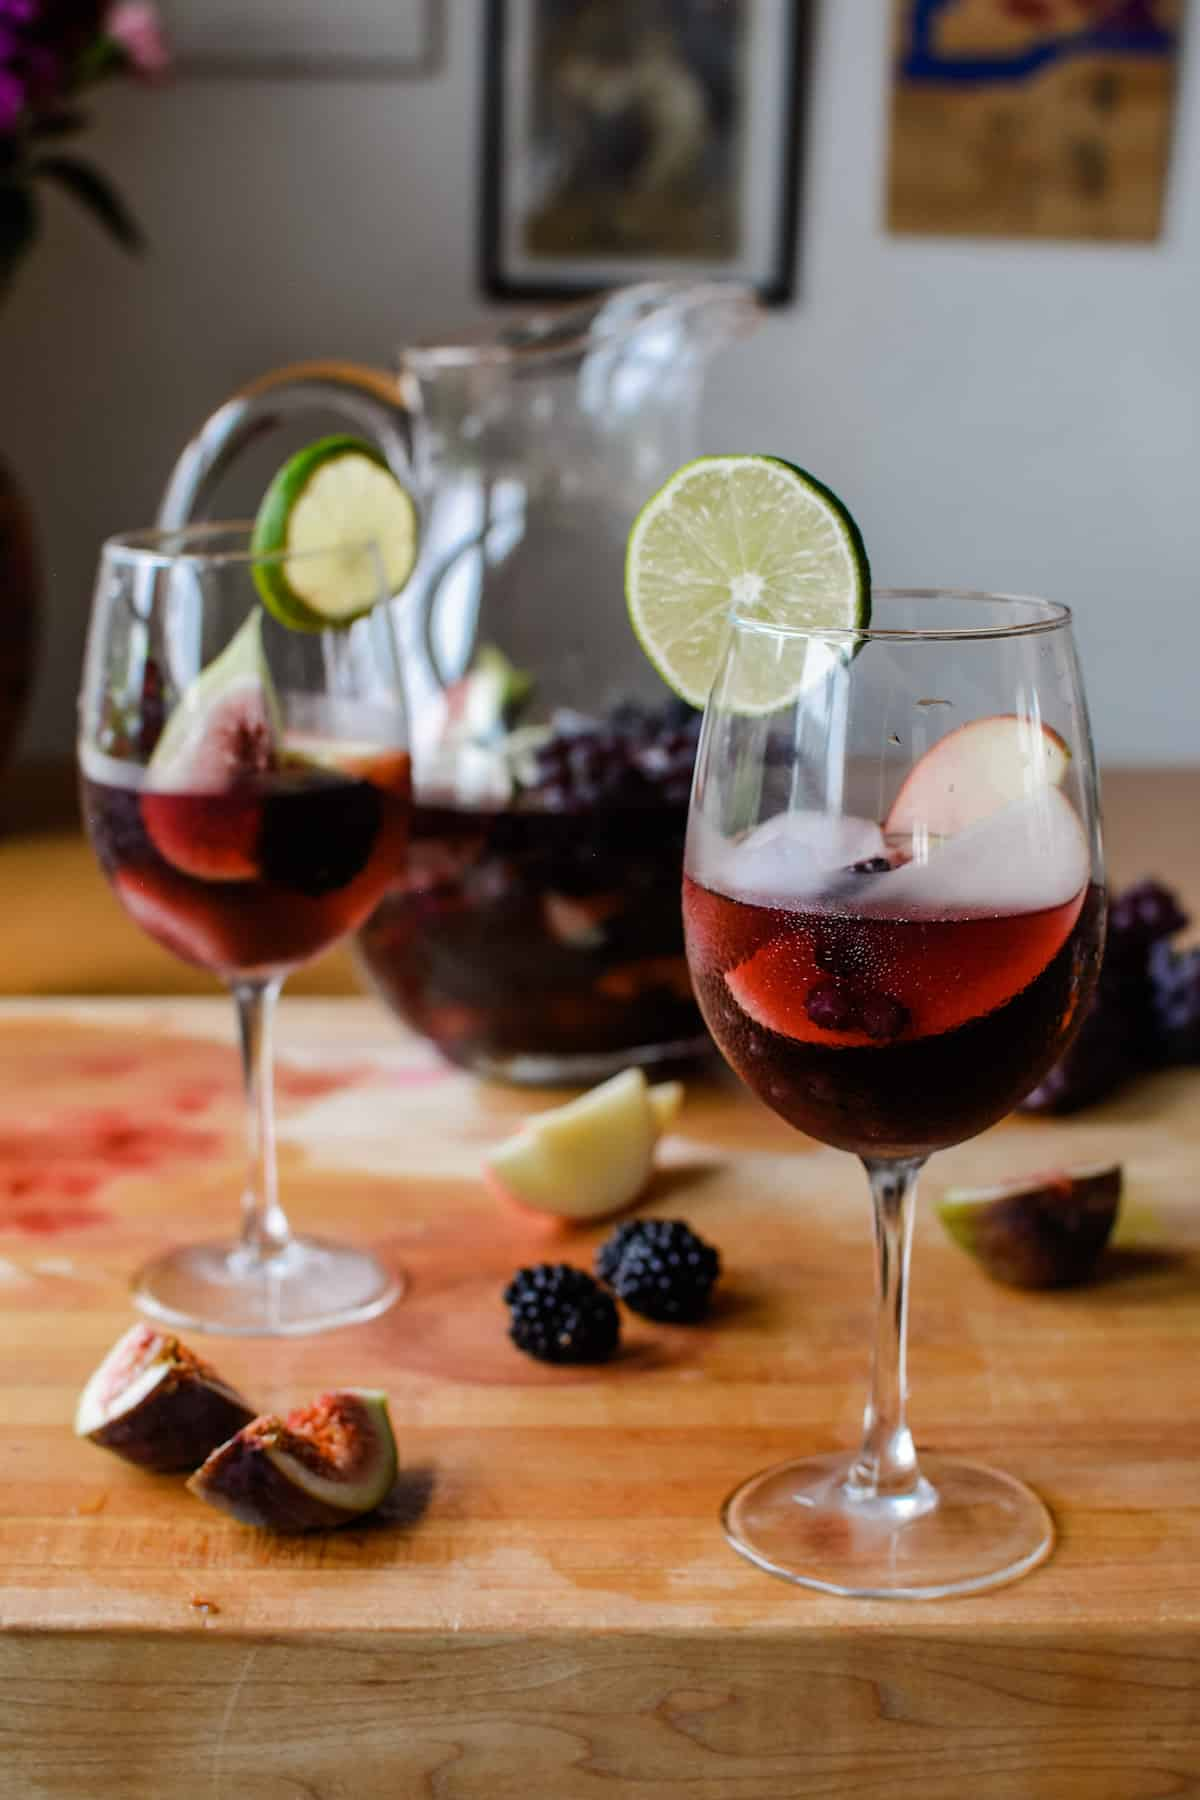 Two wine glasses of sangria and ice with a lime wedge on each glass. Glasses are sitting on a wooden cutting board next to cut fruit.